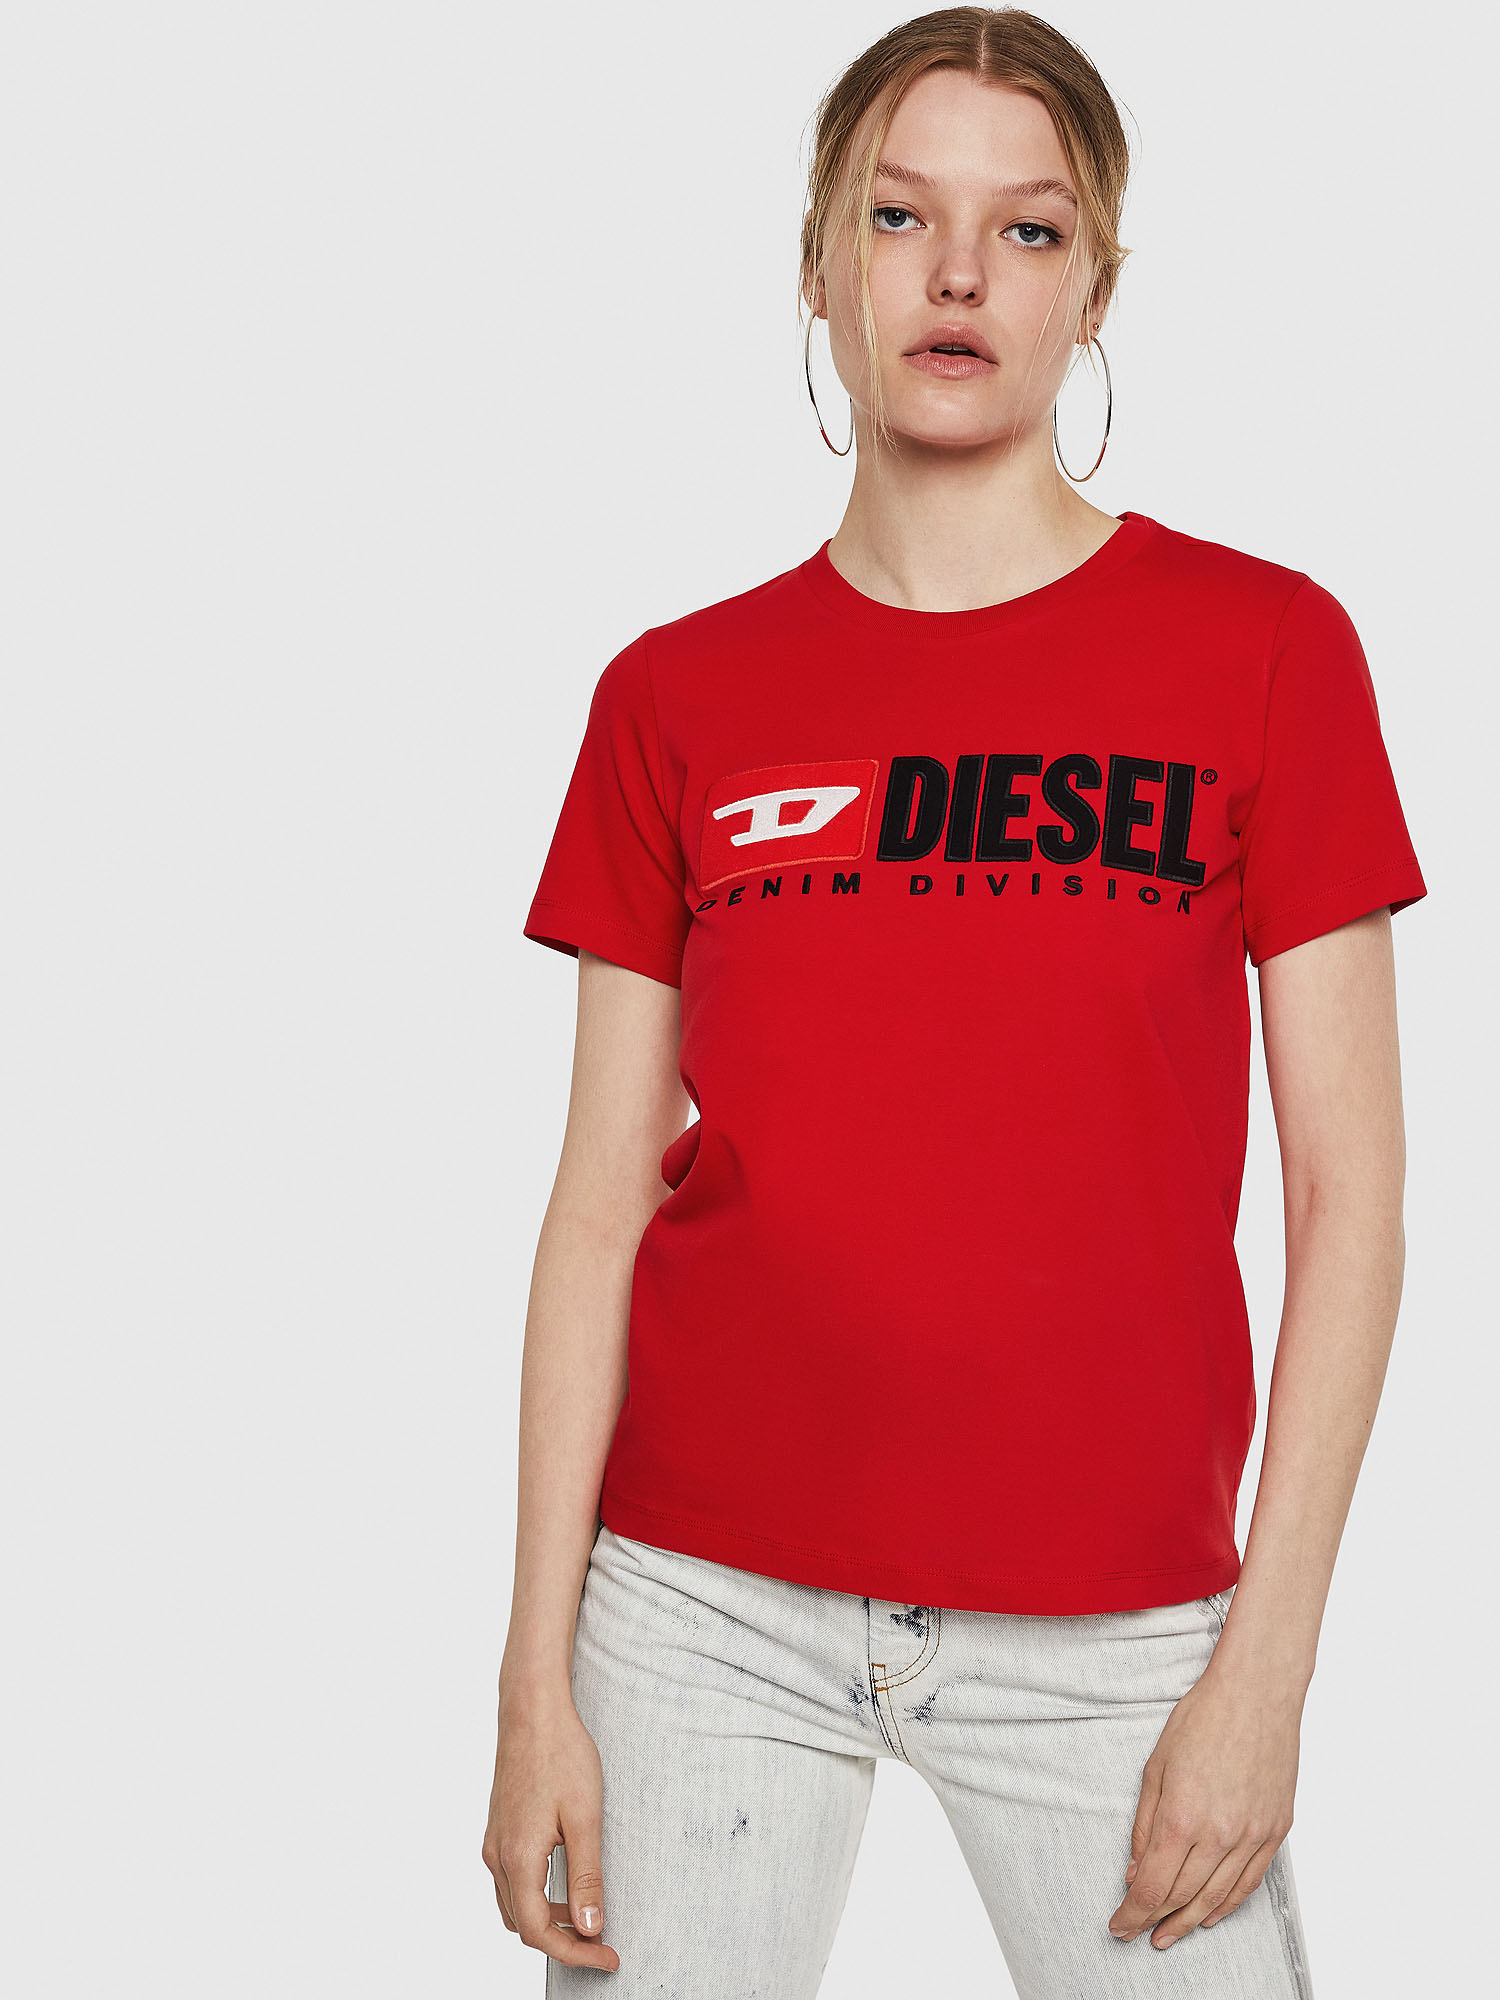 Diesel - T-SILY-DIVISION,  - T-Shirts - Image 1